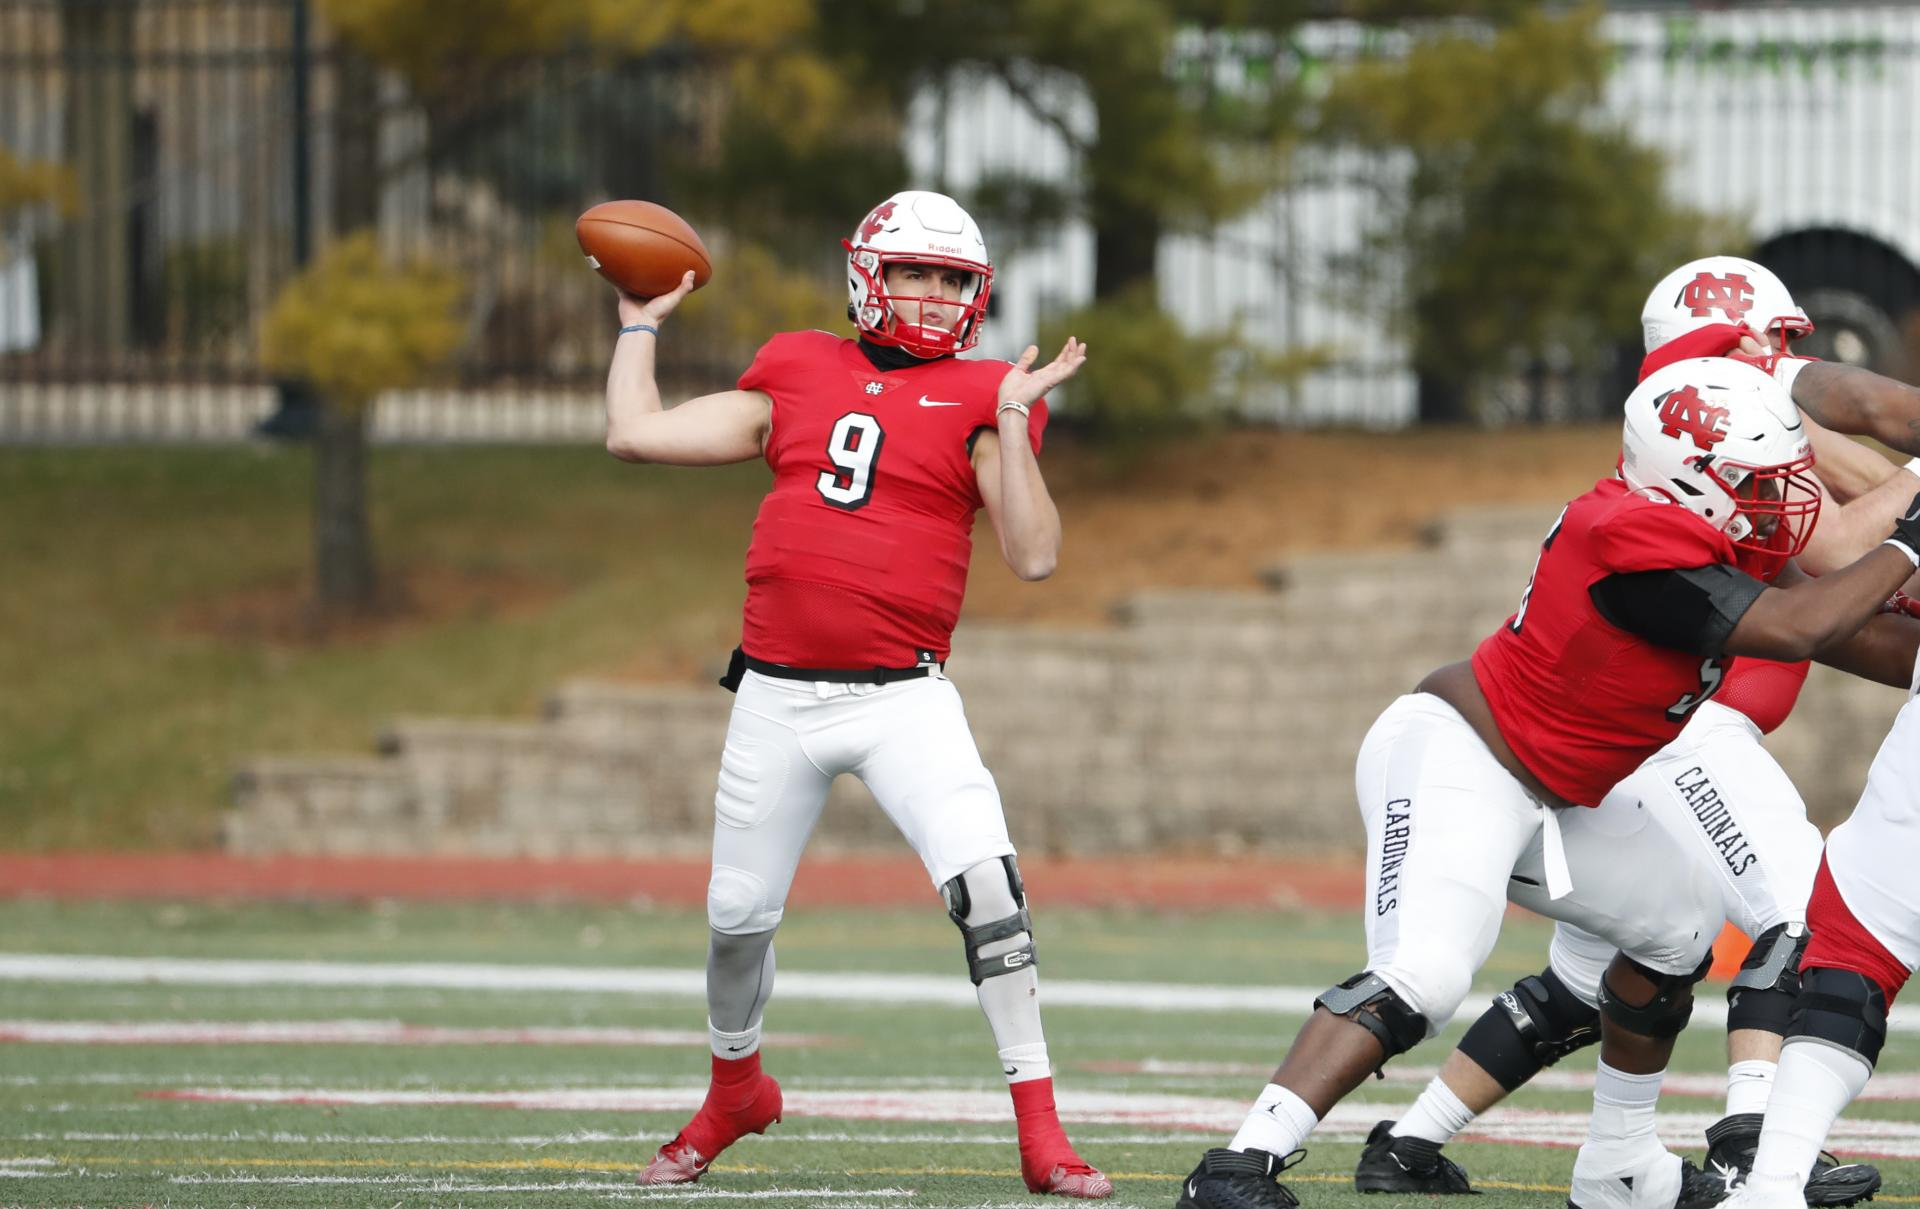 North Central College quarterback Broc Rutter throwing a pass.